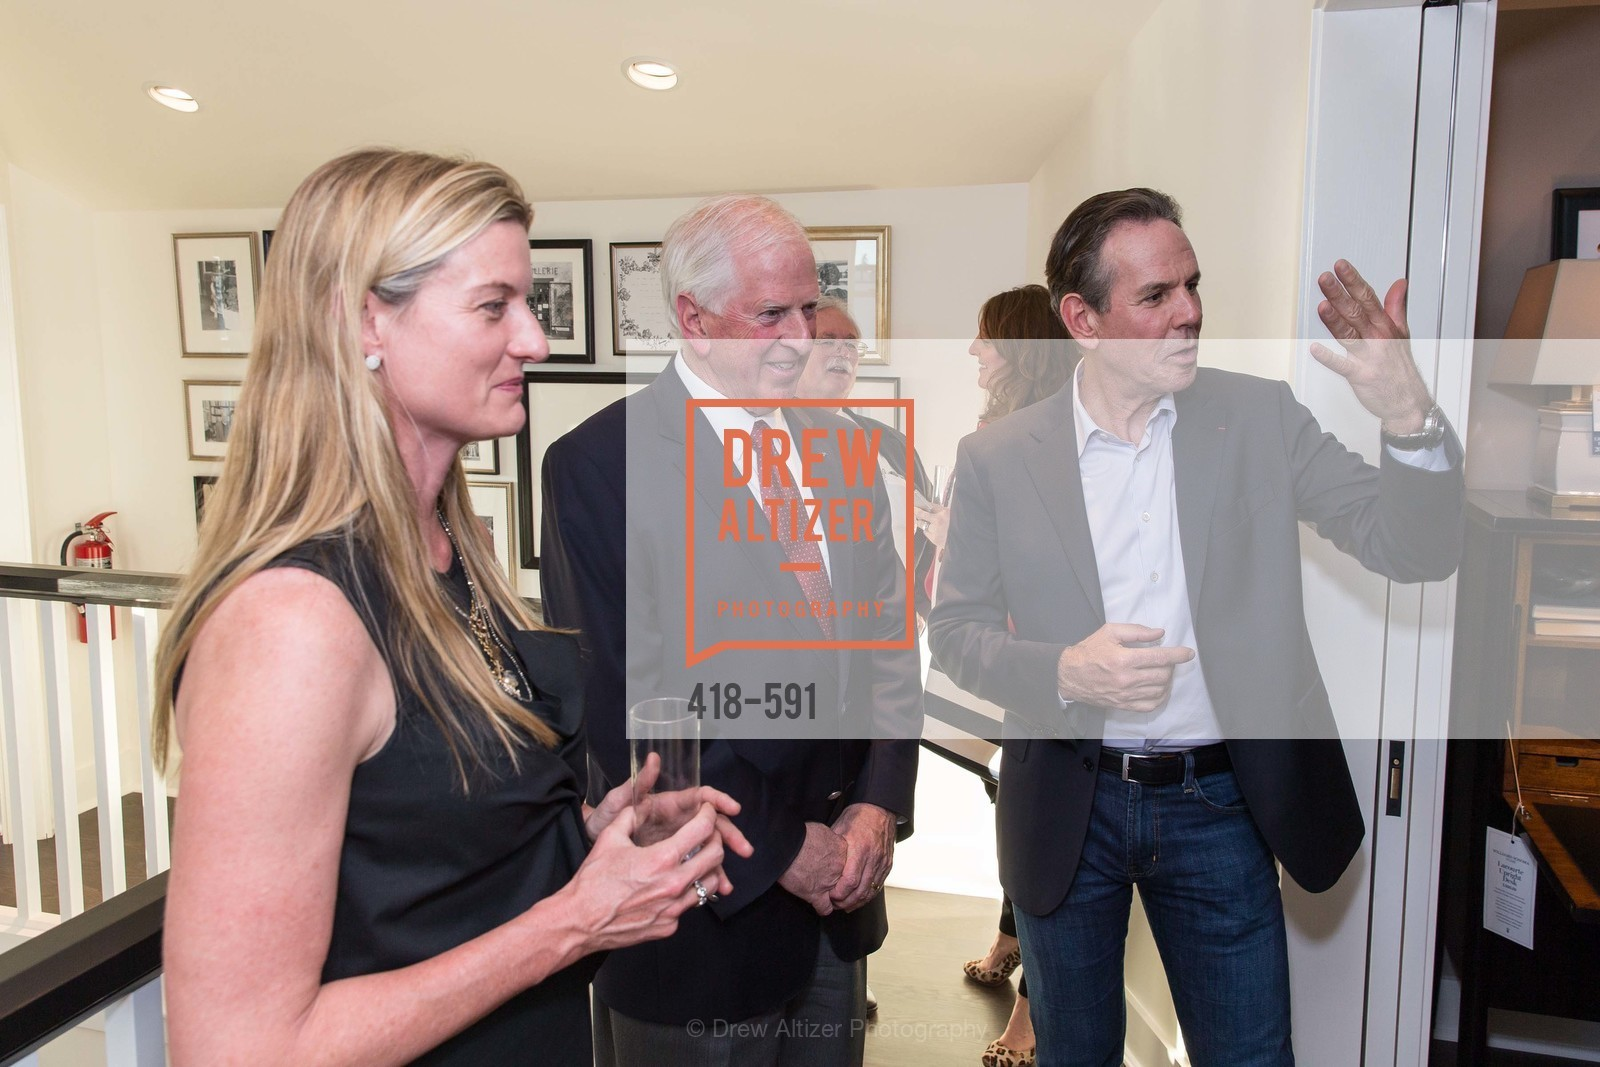 Laura Alber, Thomas Keller, CHUCK WILLIAMS Birthday Celebration, US, October 3rd, 2014,Drew Altizer, Drew Altizer Photography, full-service agency, private events, San Francisco photographer, photographer california